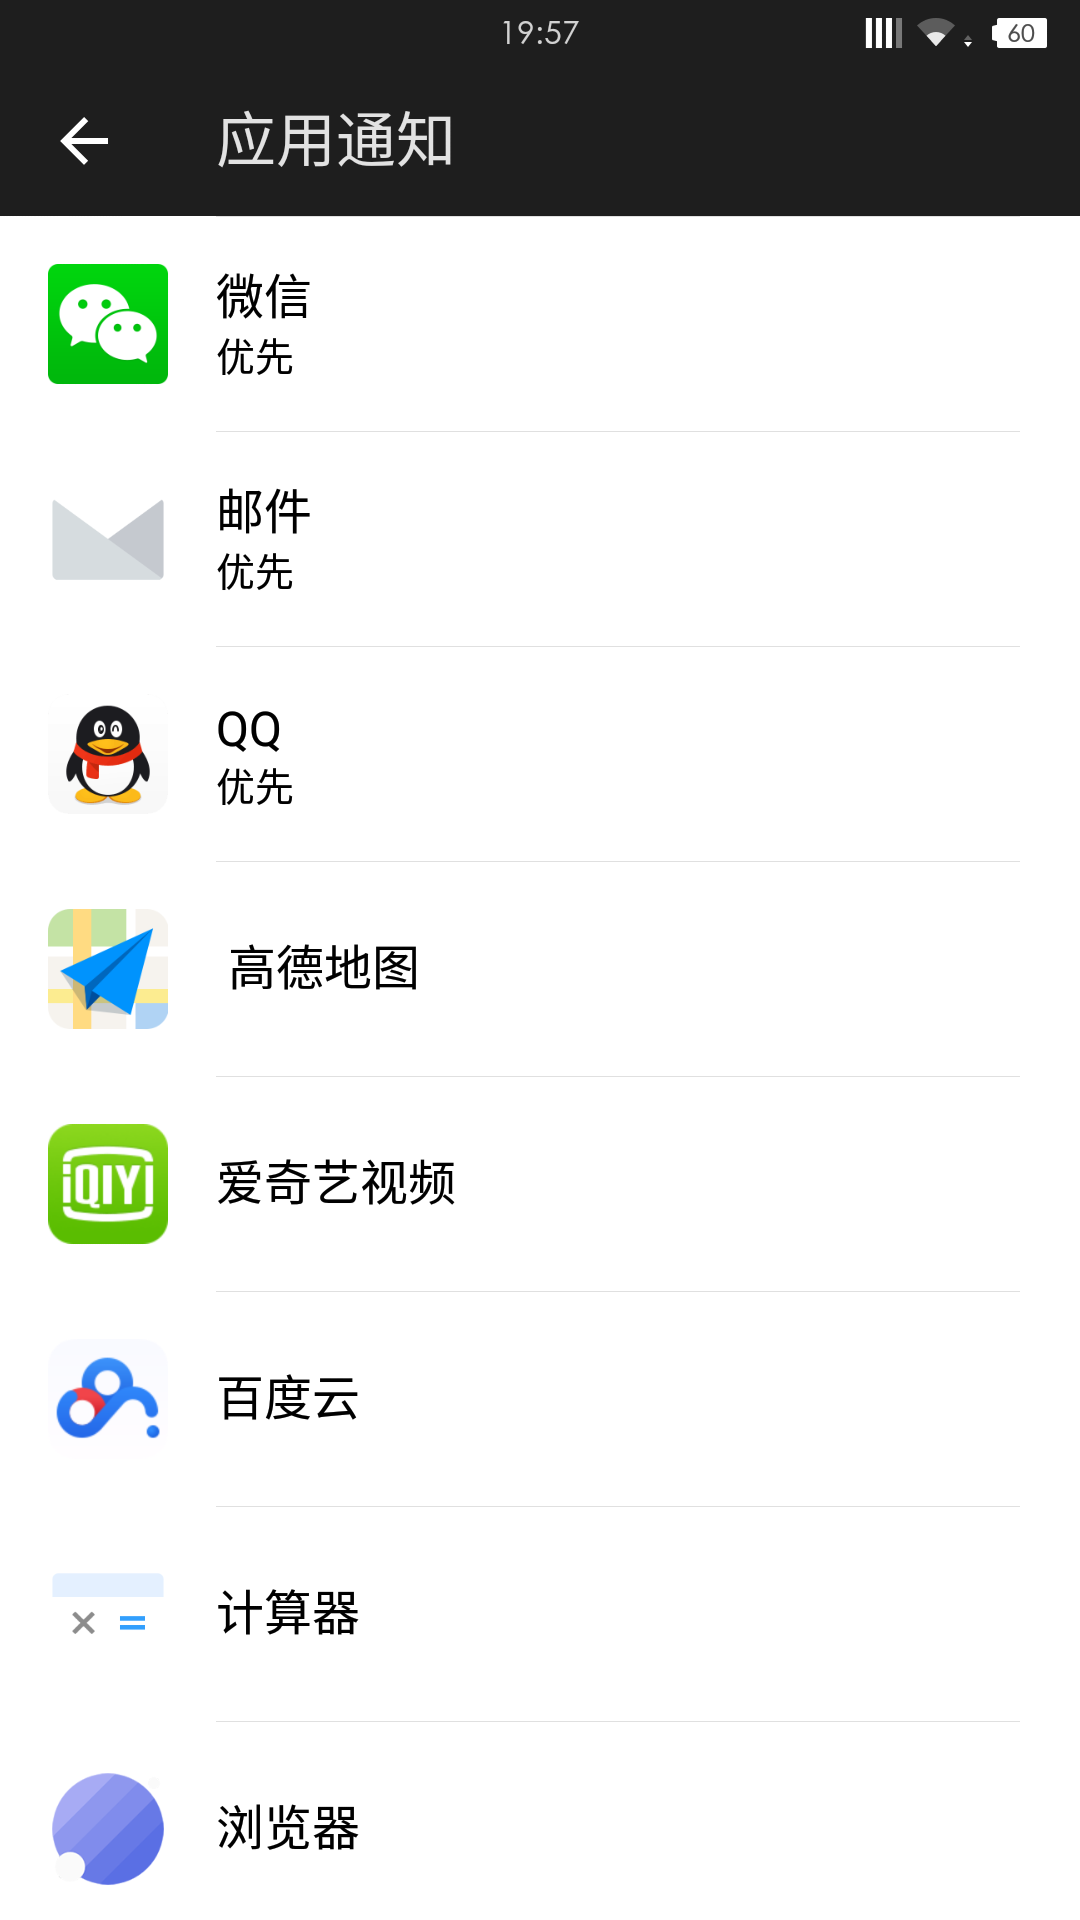 Screenshot_2015-08-30-19-57-53.png